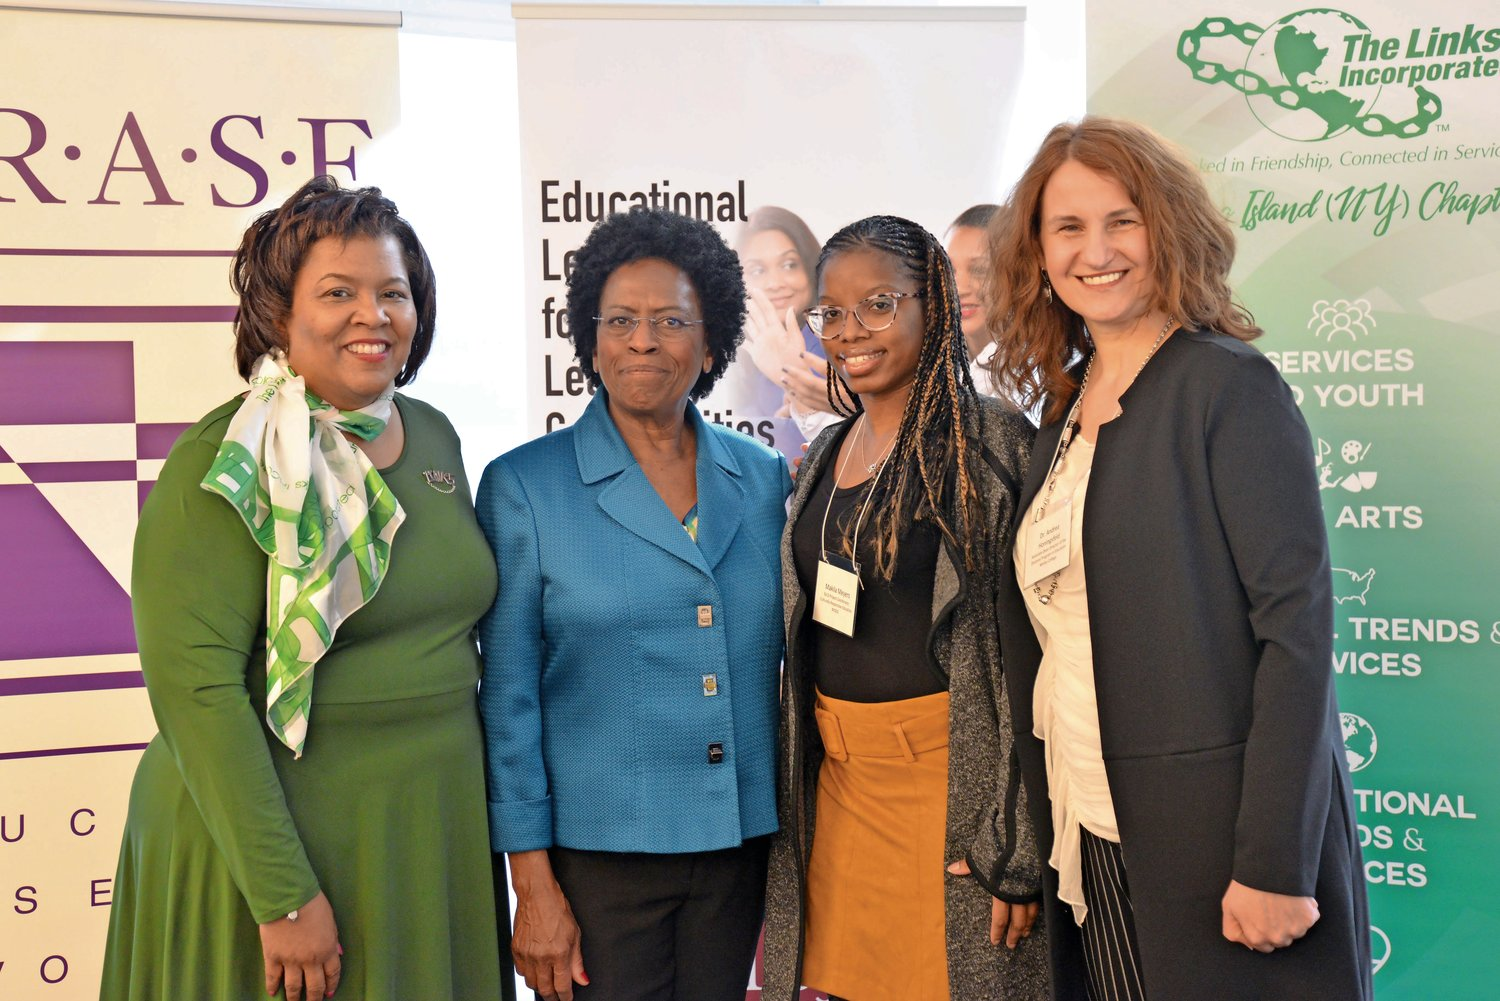 Leah E. Watson, president of The Links Incorporated Long Island Chapter, far left; Elaine Gross, president of ERASE Racism; Dr. Makila Meyers, of the New York State Education Department; and Andrea Honigsfeld, associate dean and director of Molloy College's Doctoral Program in Education, attended the event.